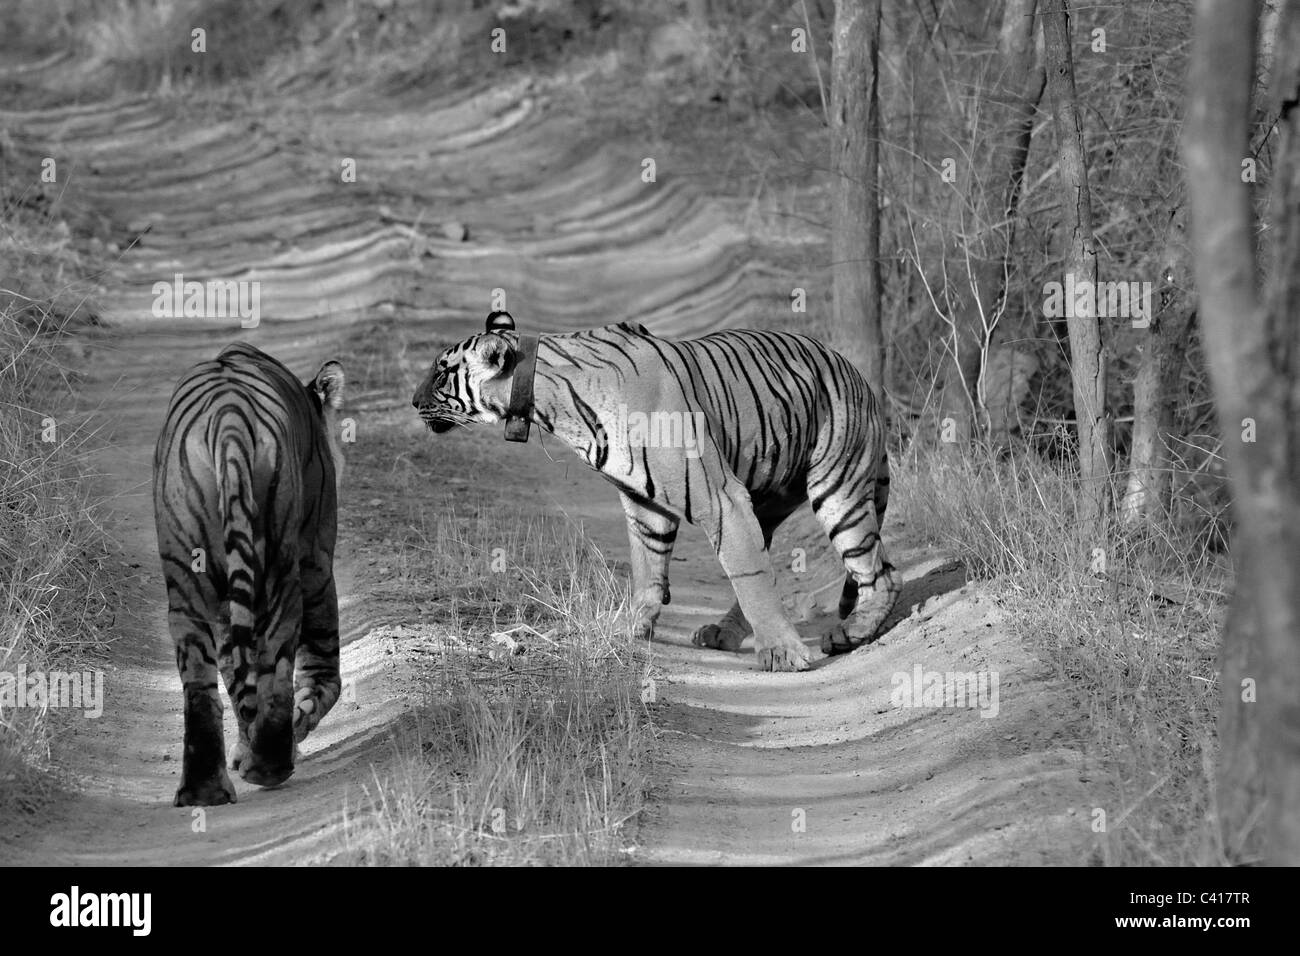 A mating pair of two tigers on a jungle track in Ranthambore national park, India - Stock Image